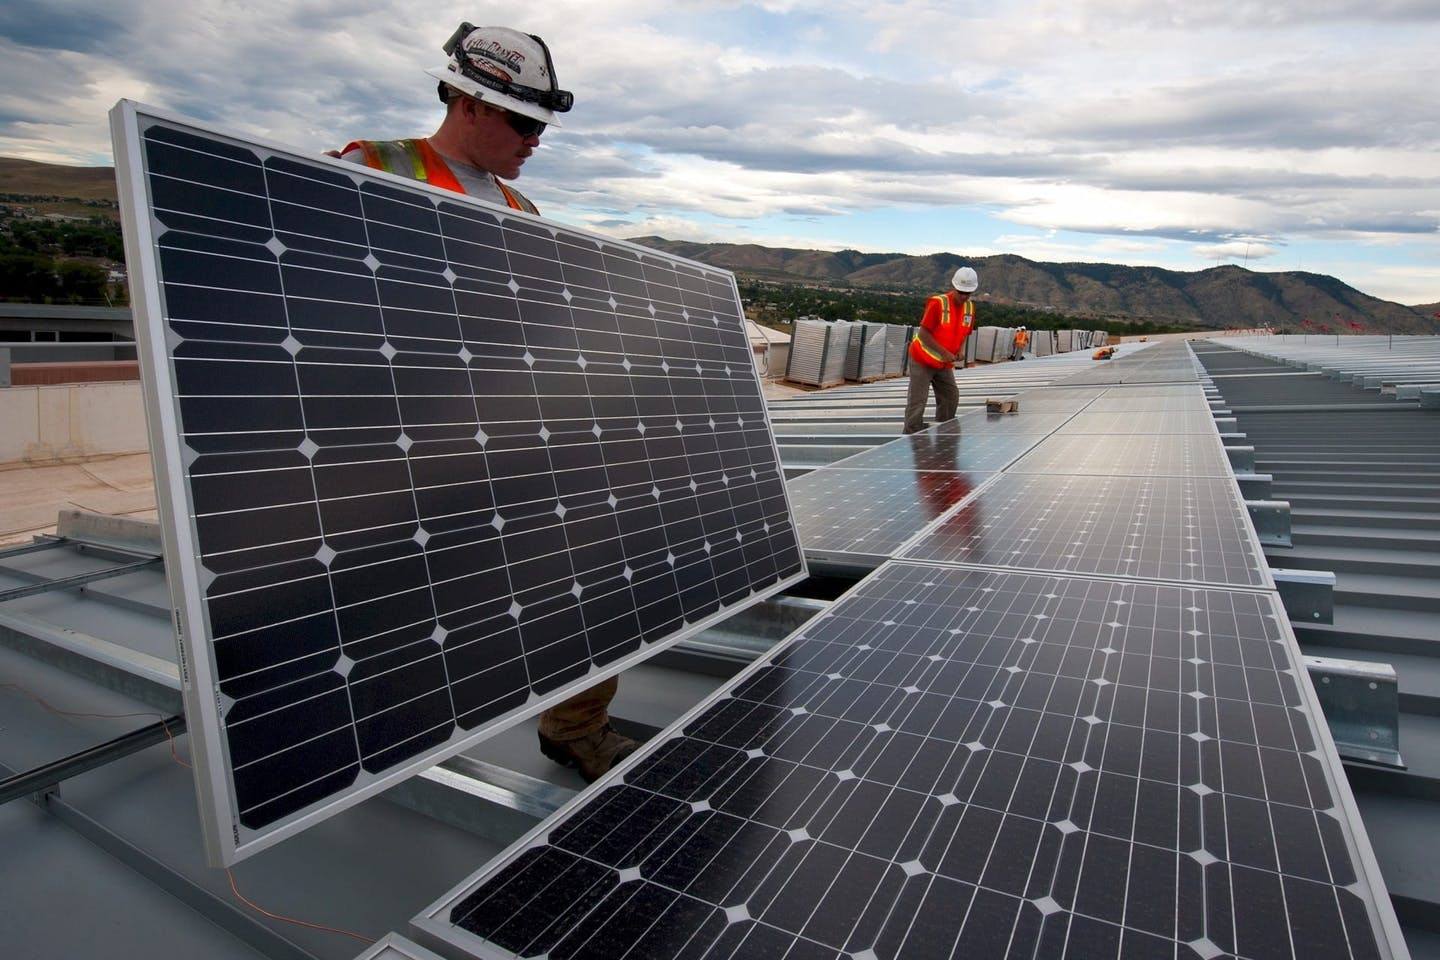 workers installing solar panel1